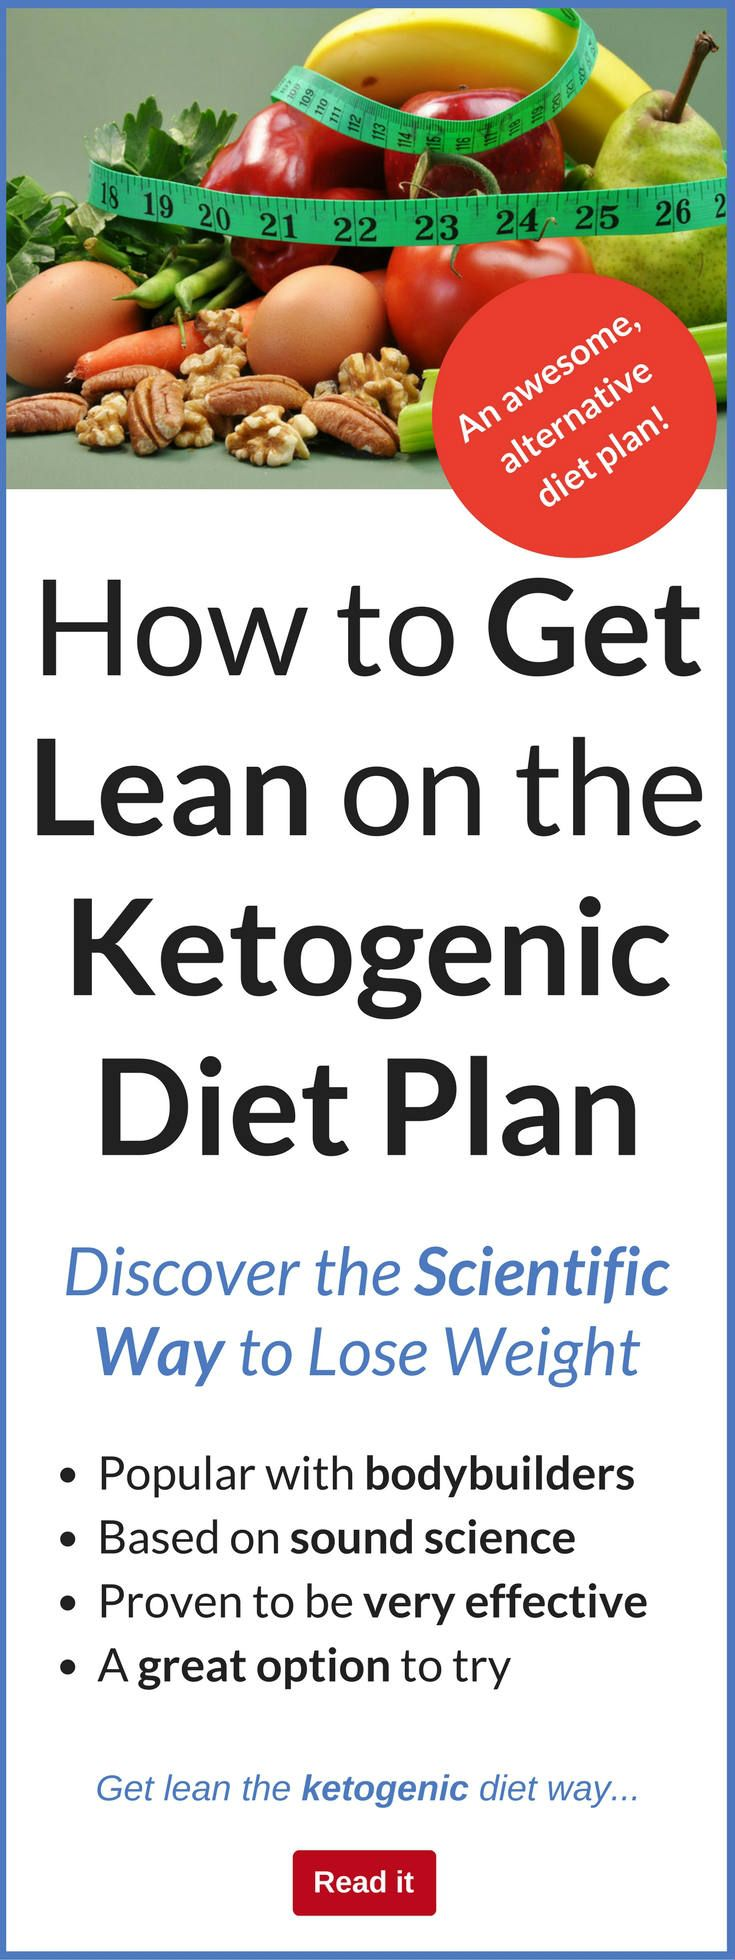 Losing body fat while keeping muscle is a challenging endeavour. There are lots of diets out there that will definitely help you lose fat, but sometimes your hard-earned lean mass is lost along with body fat. The ketogenic diet plan is different from a lot of diets on the market. Read on to learn how to get lean with the ketogenic diet plan.